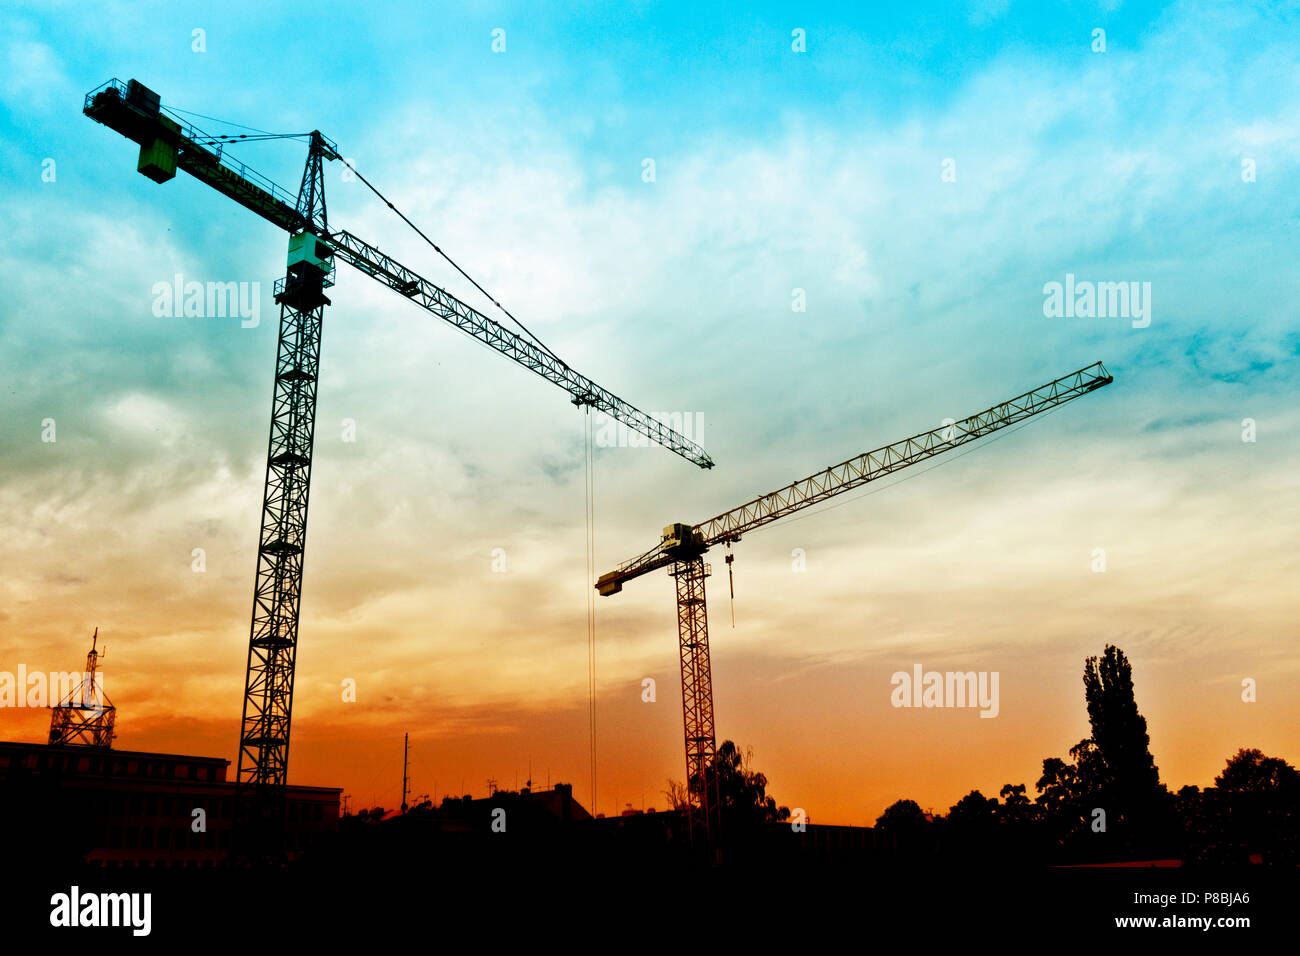 tower cranes in silhouette at a construction site - Stock Image